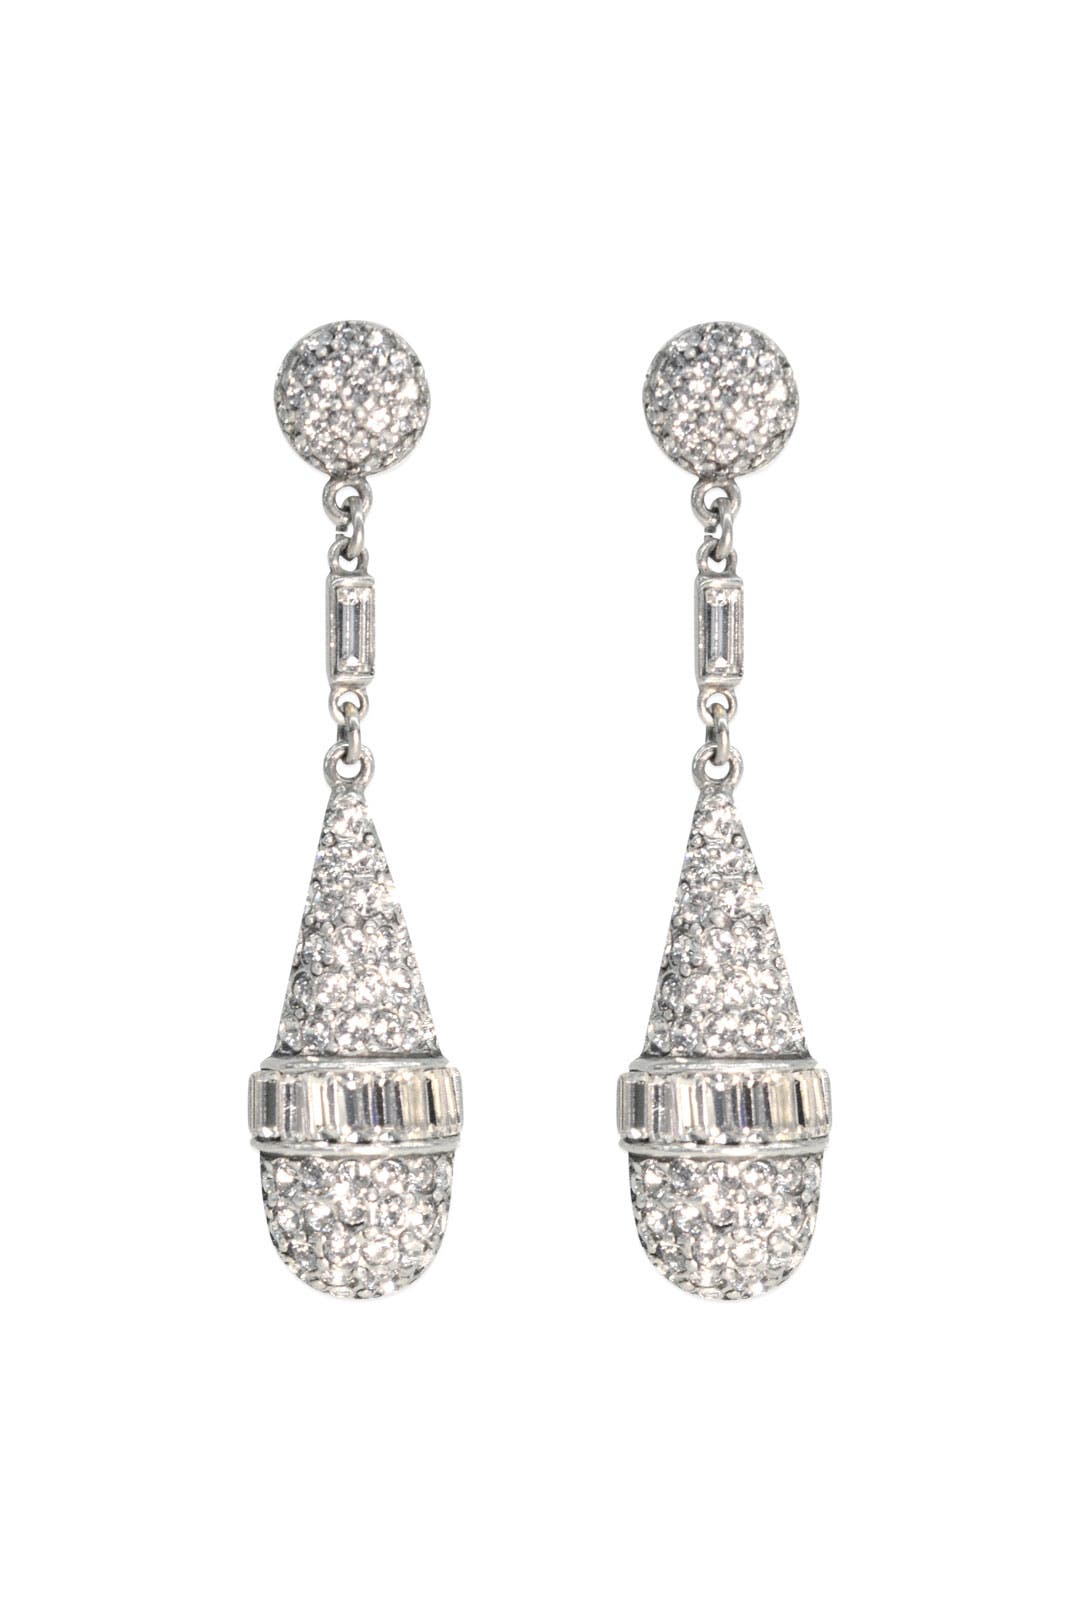 Deco Crystal Teardrops by Ben-Amun